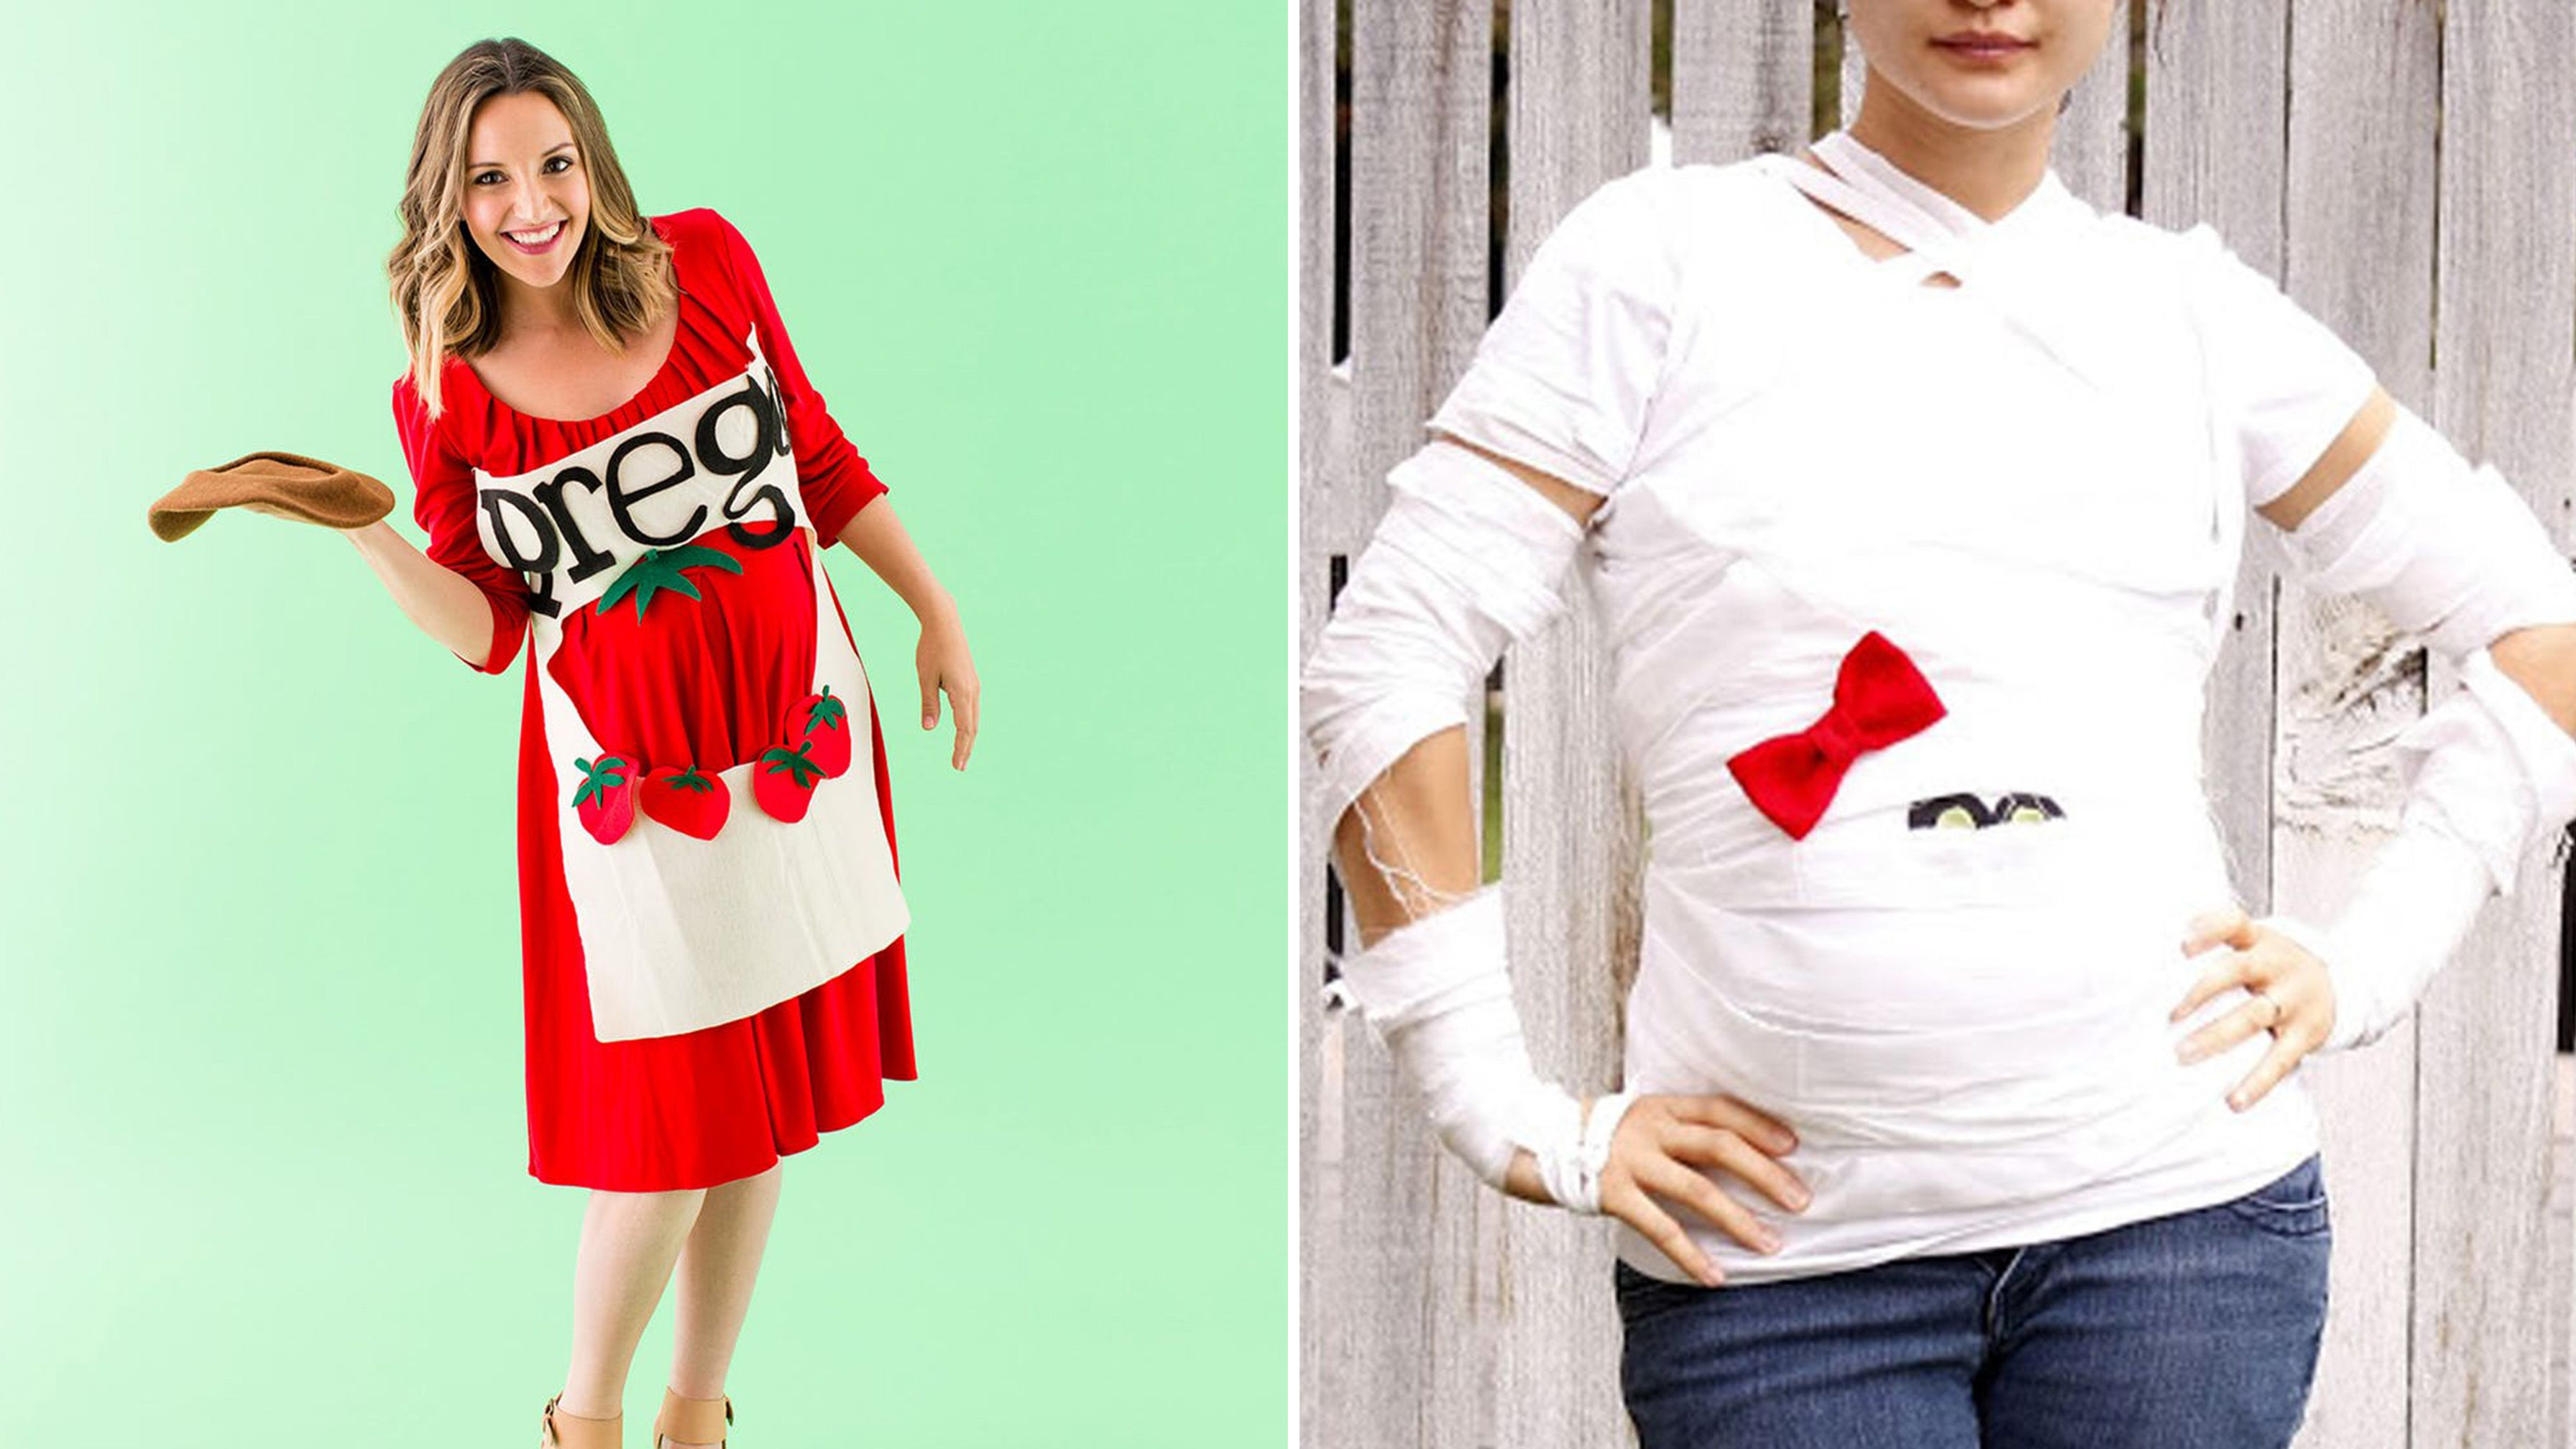 diy pregnant halloween costumes  sc 1 st  Country Living Magazine & 13 Funny Pregnant Women Halloween Costumes - Cute Maternity Costume ...